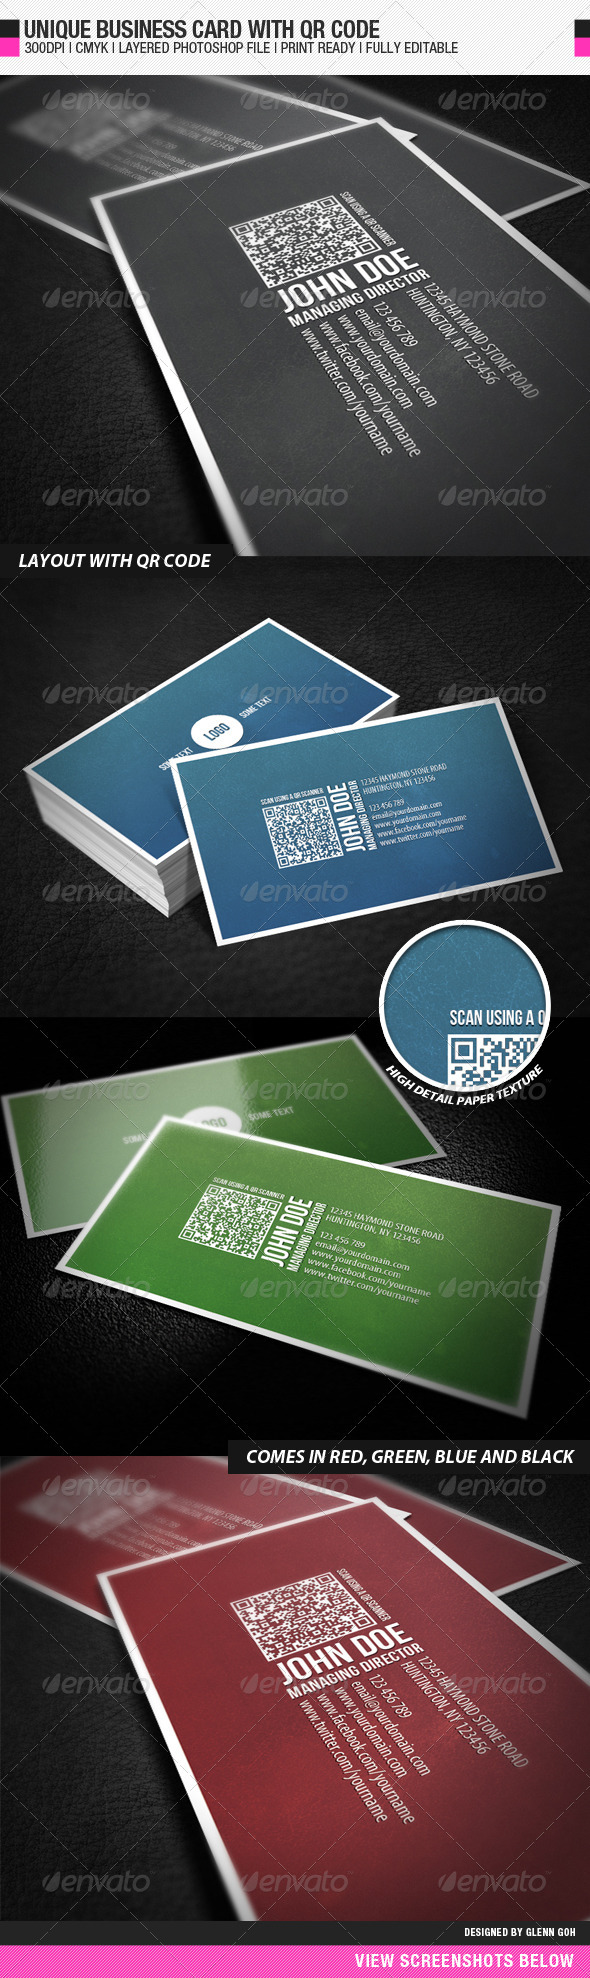 Business Card With QR Code - Corporate Business Cards